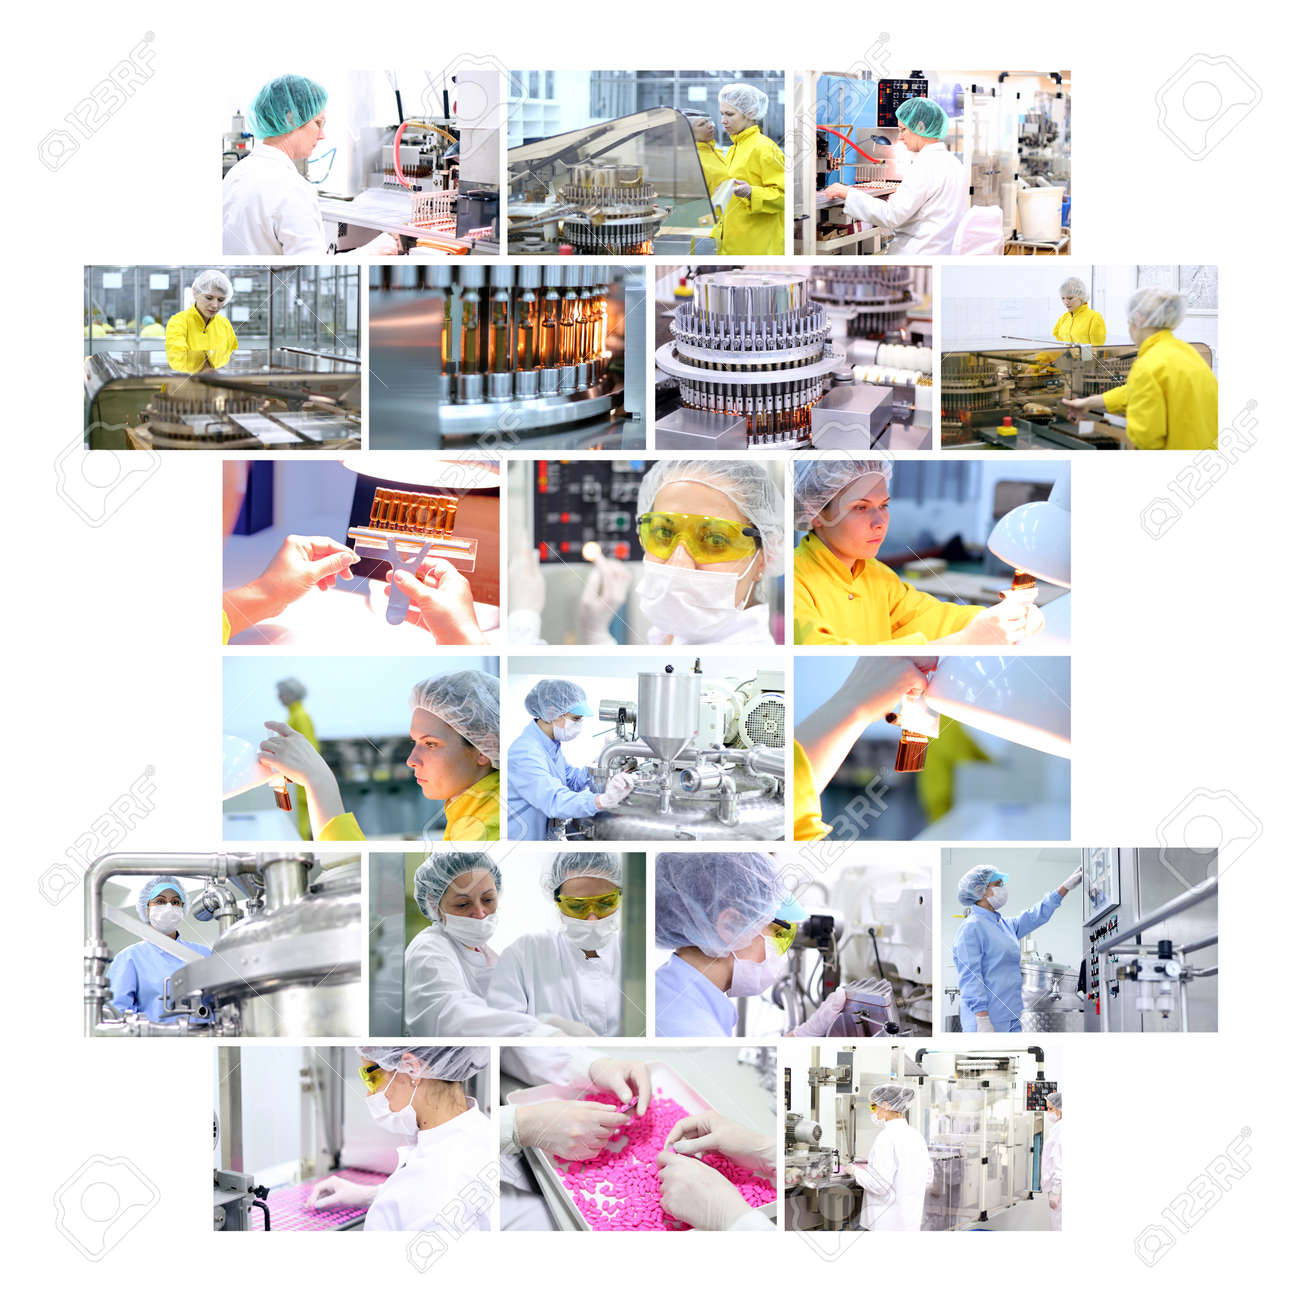 Industrial collage showing workers at work on production of medicines in pharmaceutical factory - vaccines, medicines in ampules, pills, capsules, tablets - 11858987